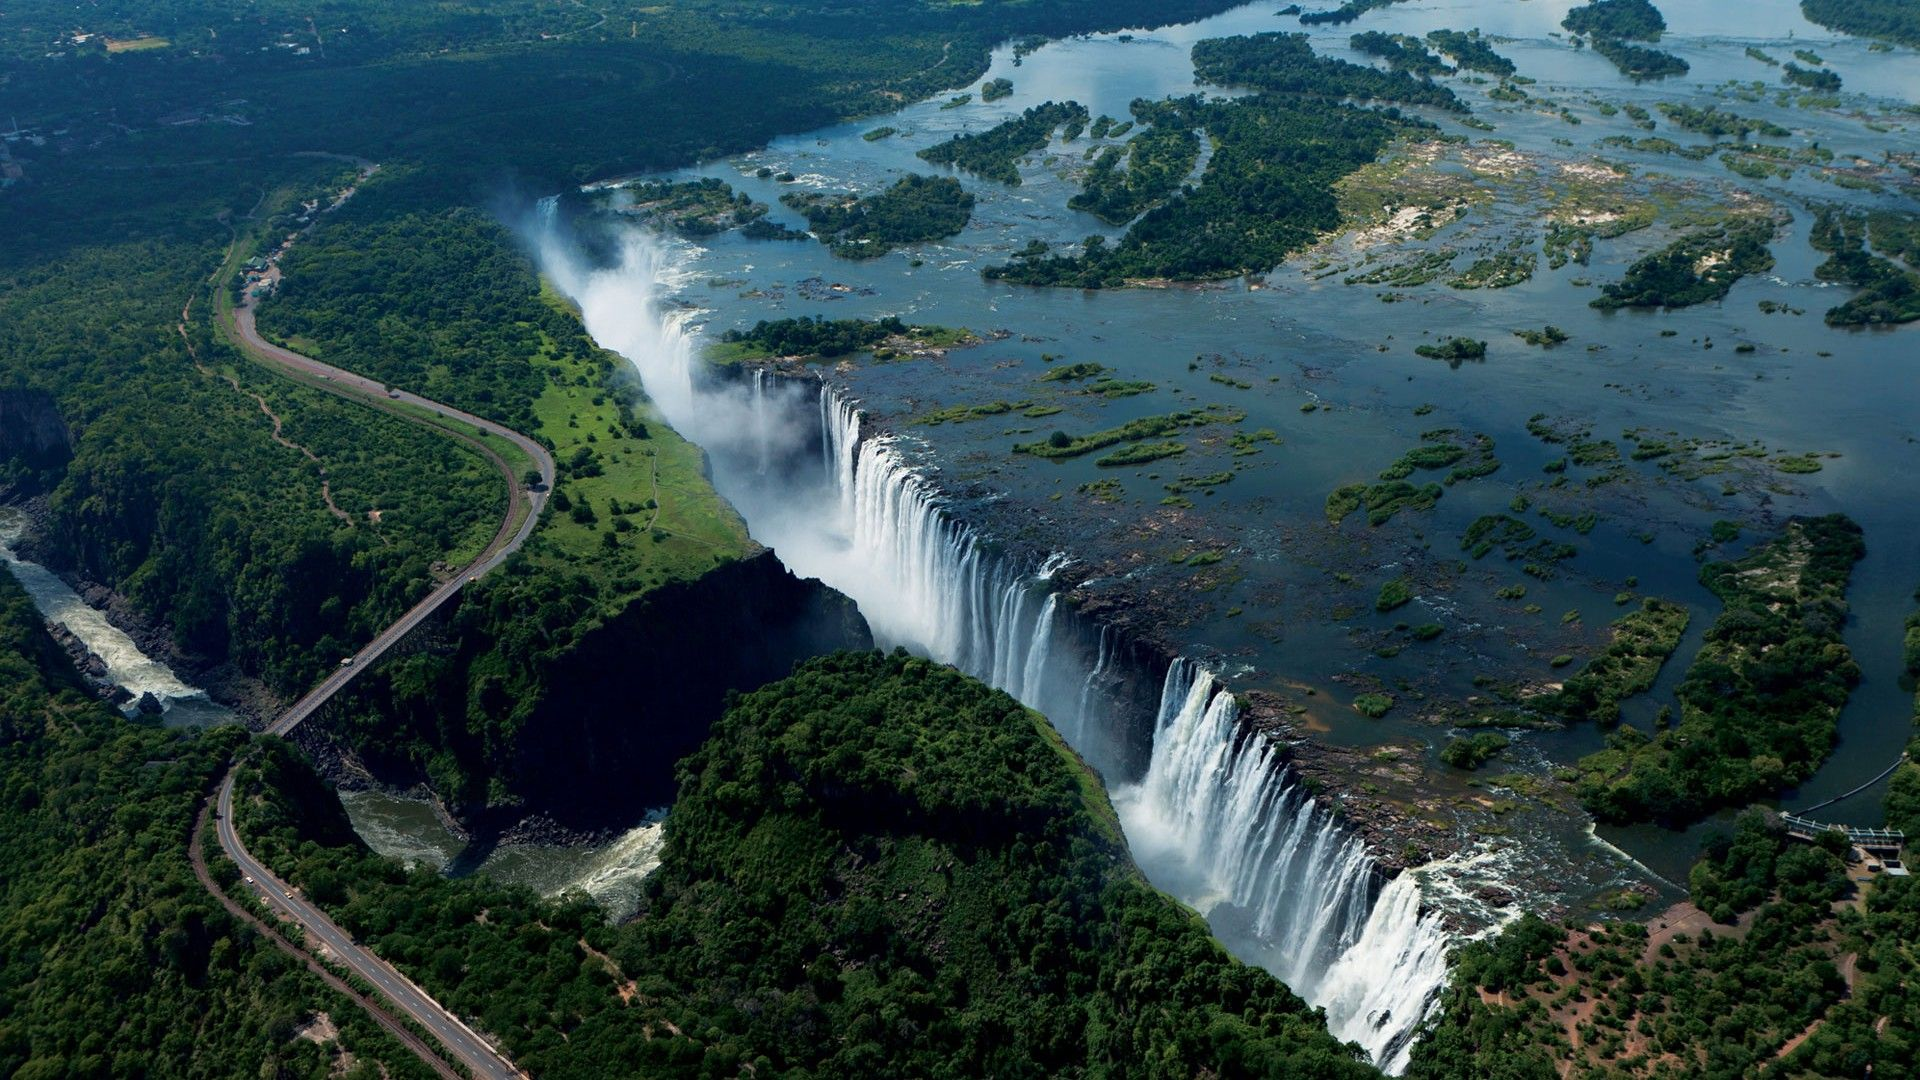 Victoria Falls Wallpapers - Top Free Victoria Falls Backgrounds ...